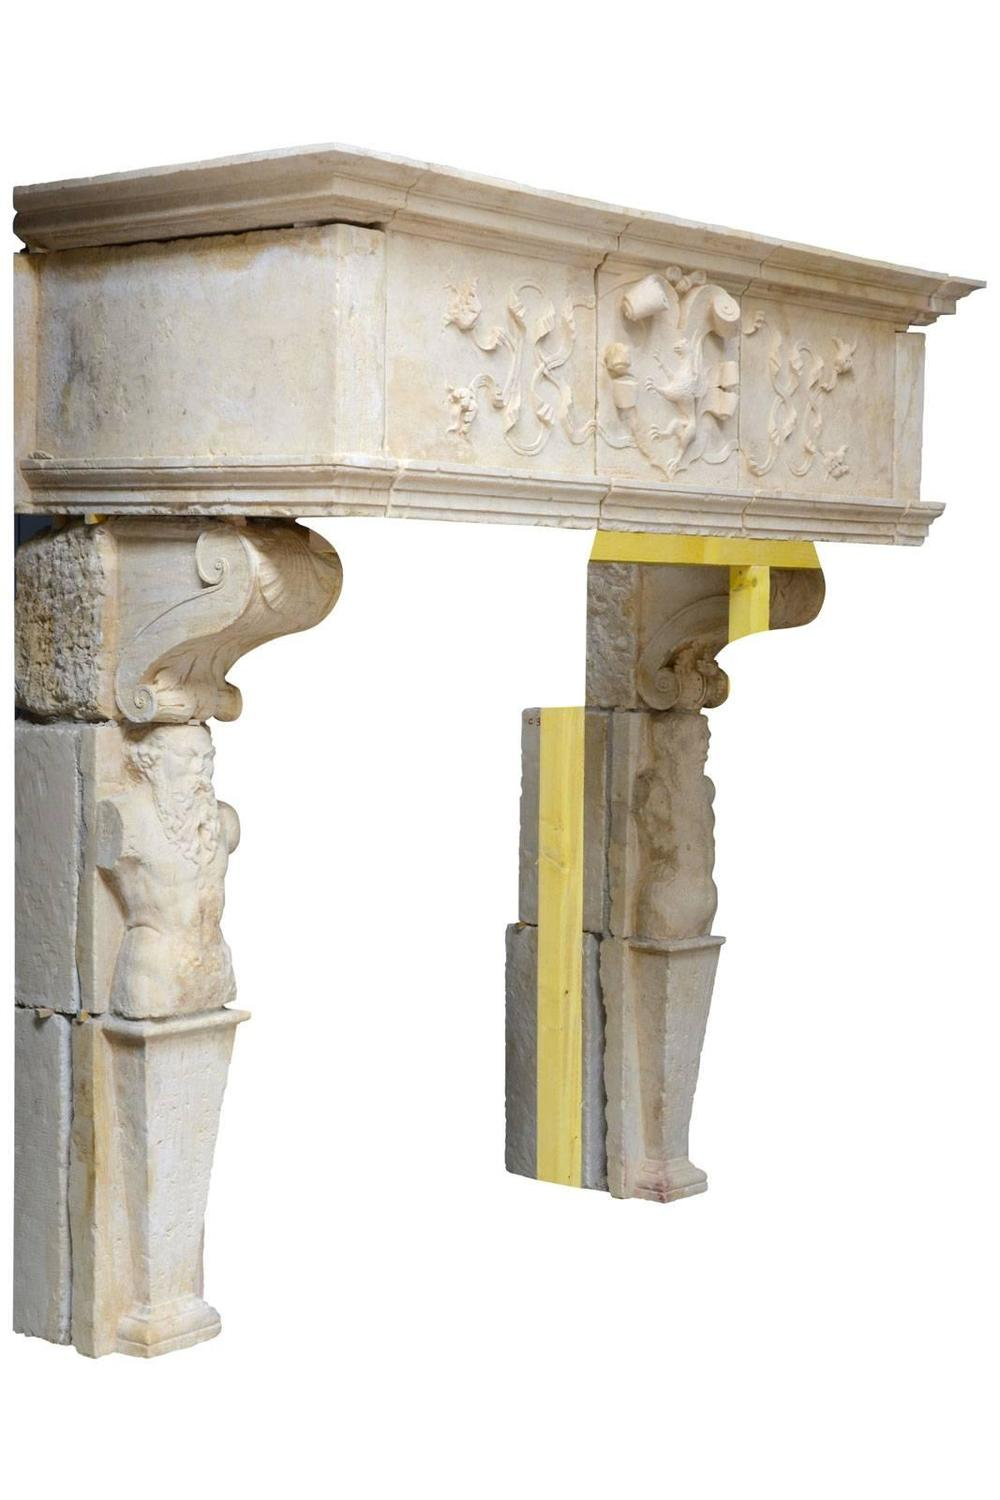 Exceptional Renaissance Bourgogne Stone Fireplace 16th Century For Sale At 1stdibs